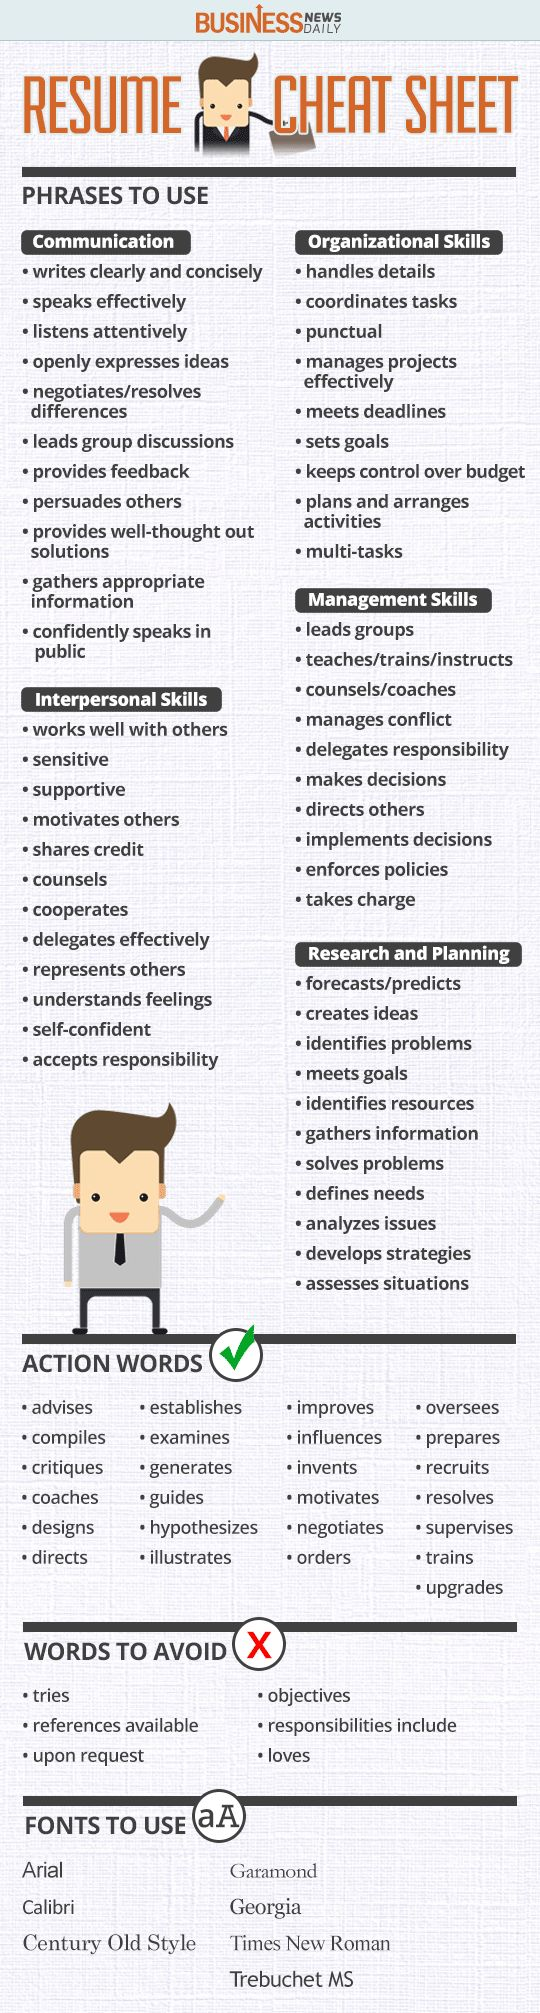 Opposenewapstandardsus  Remarkable  Ideas About Resume On Pinterest  Cv Format Resume Cv And  With Lovely Resume Cheat Sheet Infographic Andrews Almost Done With A Complete Unit On Employment Which With Archaic Should I Put References On My Resume Also How To Make A Resume For Teens In Addition Cheap Resume Writing Services And Google Docs Resume Template Free As Well As Printable Resume Examples Additionally Resume Multiple Positions Same Company From Pinterestcom With Opposenewapstandardsus  Lovely  Ideas About Resume On Pinterest  Cv Format Resume Cv And  With Archaic Resume Cheat Sheet Infographic Andrews Almost Done With A Complete Unit On Employment Which And Remarkable Should I Put References On My Resume Also How To Make A Resume For Teens In Addition Cheap Resume Writing Services From Pinterestcom